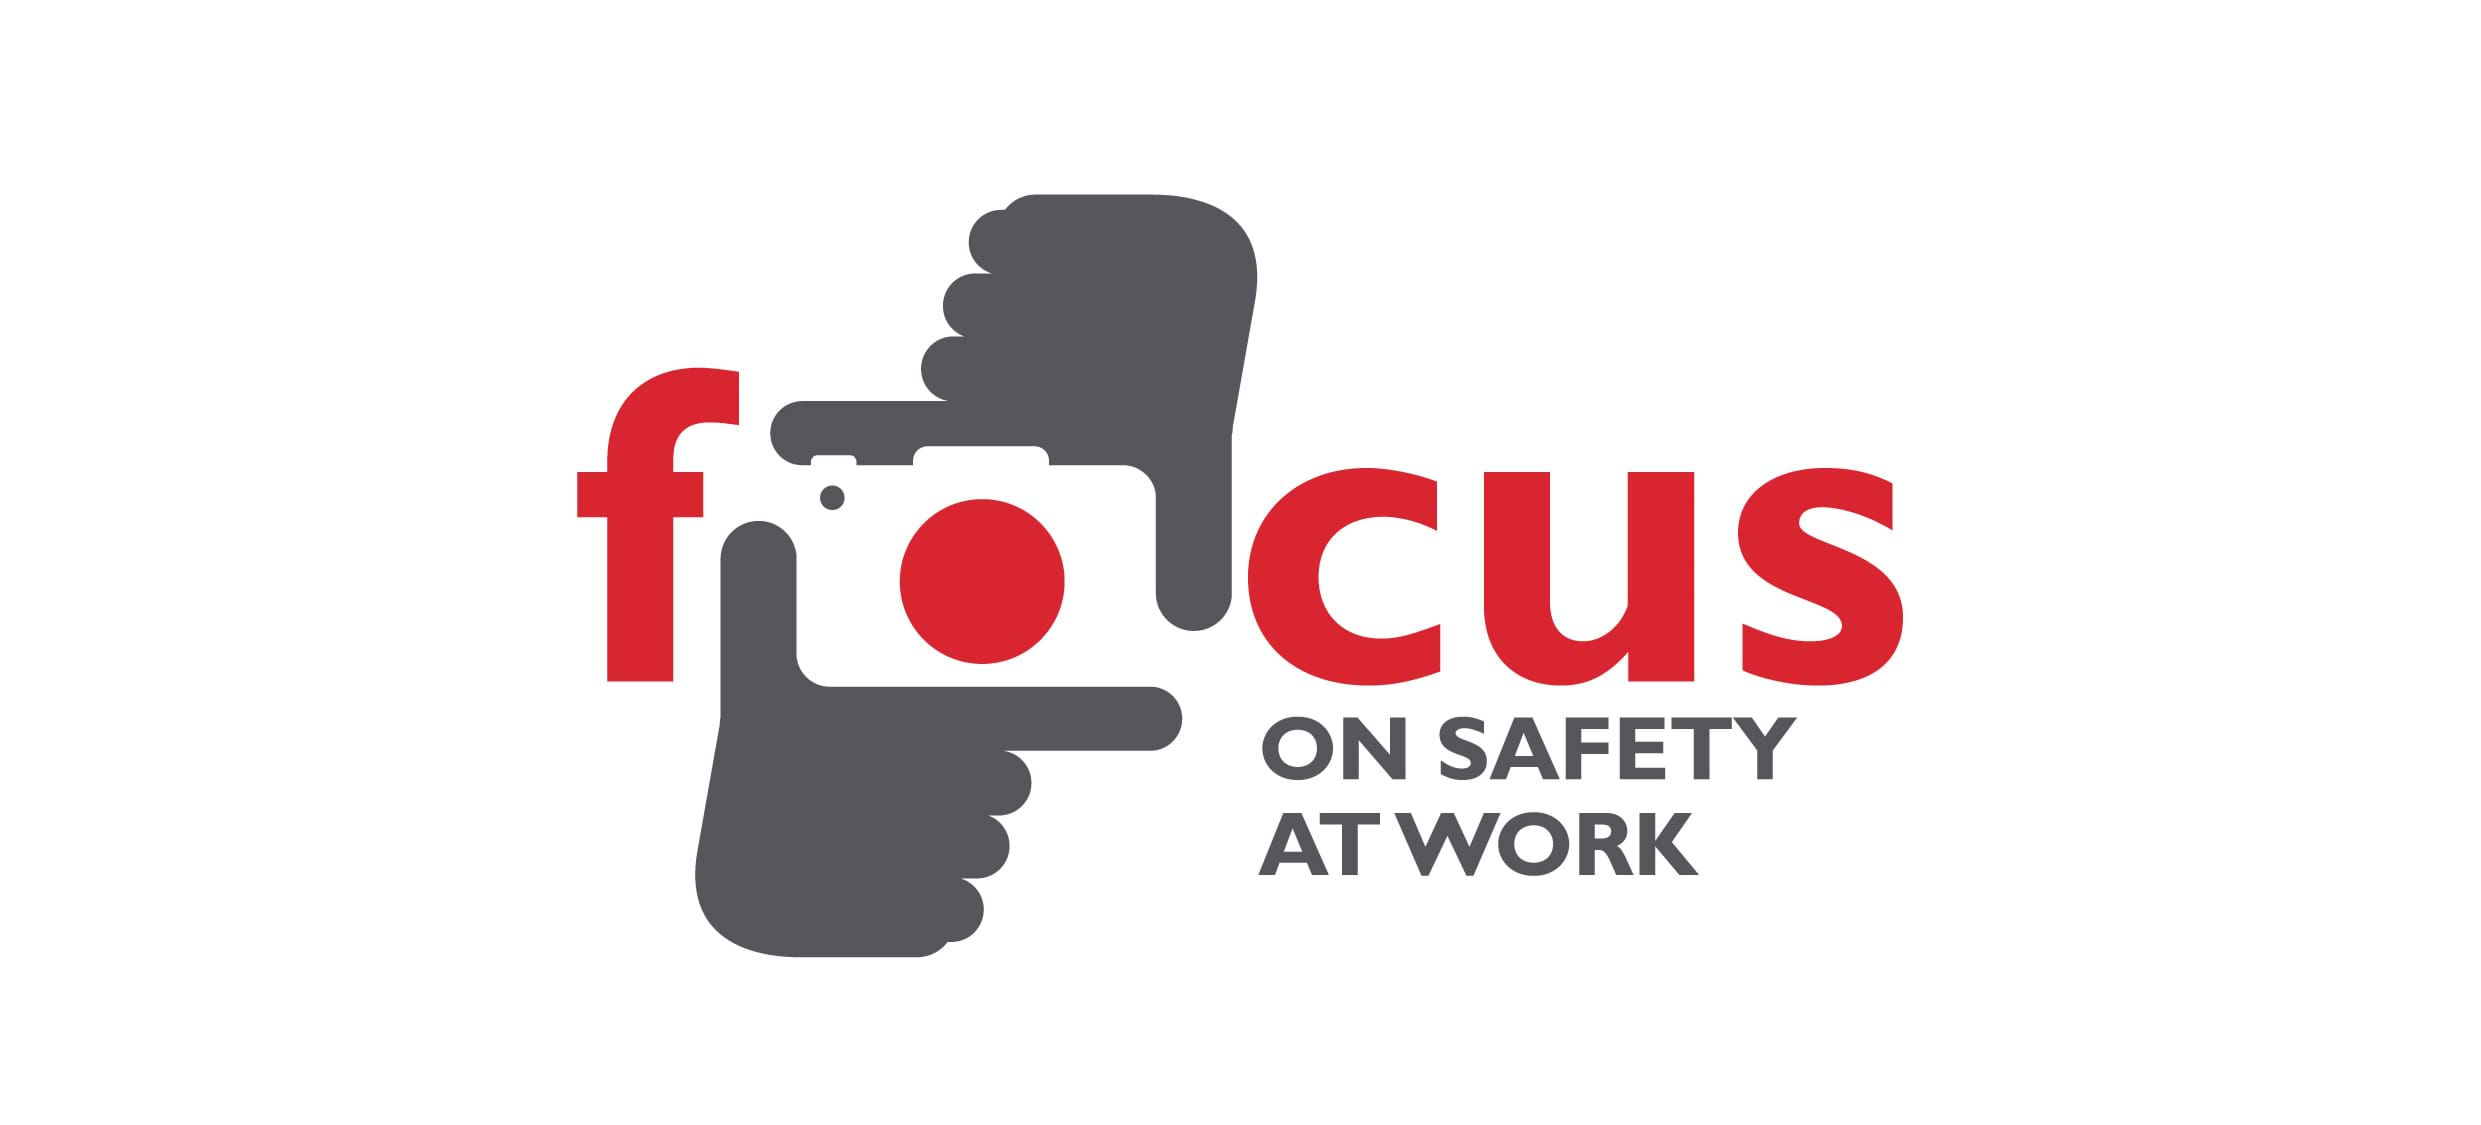 focus on safety at work workers memorial day photography competition logo